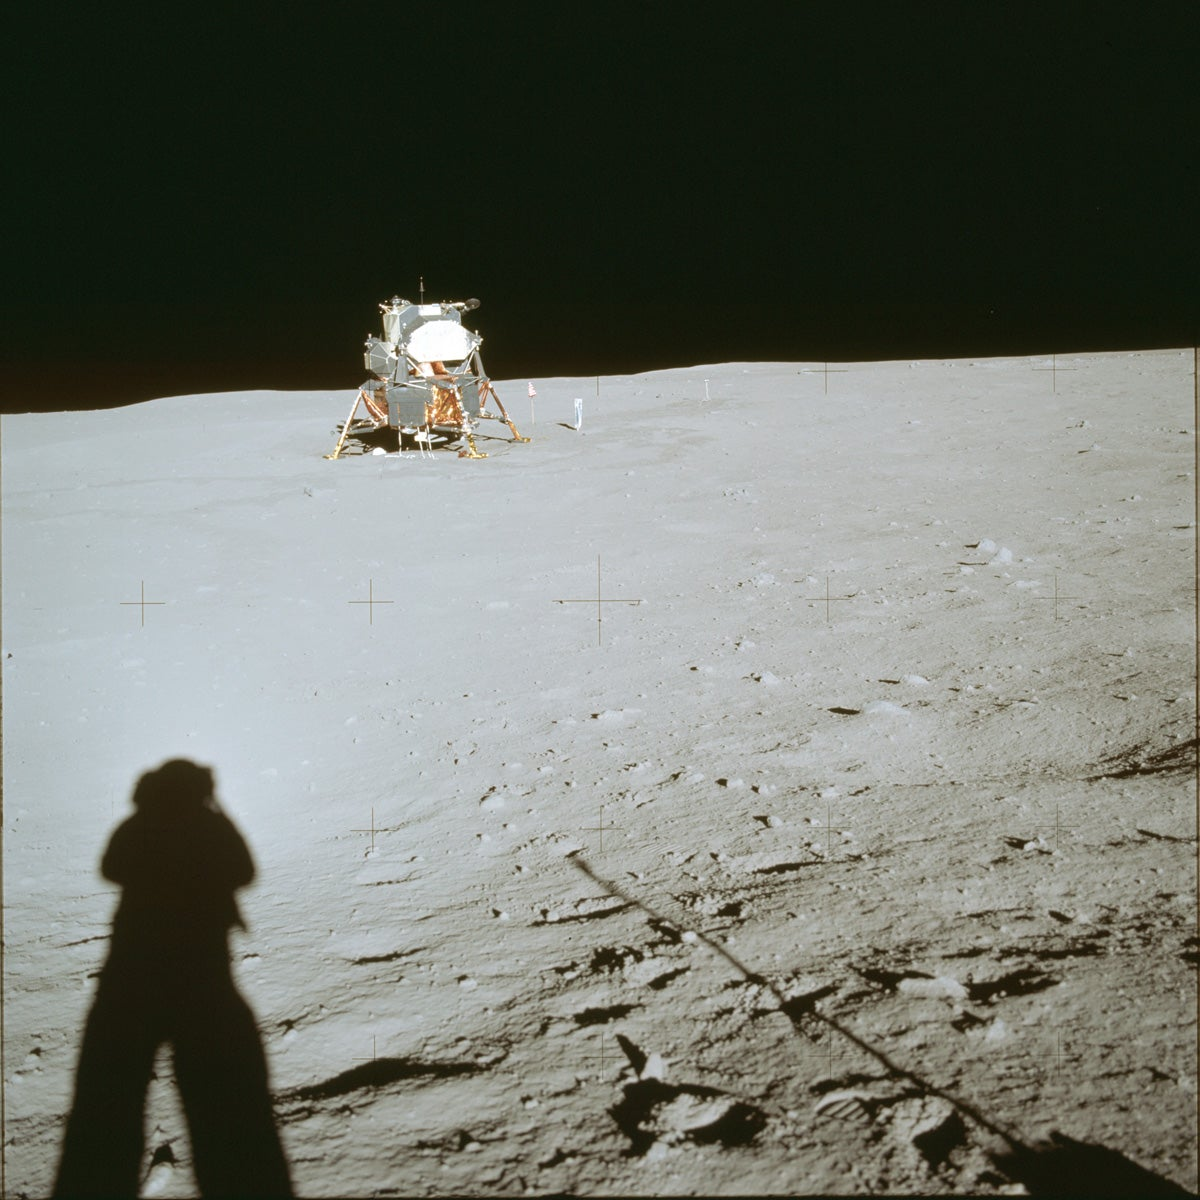 Rare Photos Reveal Fascinating Views Of The Apollo 11 Moon ...